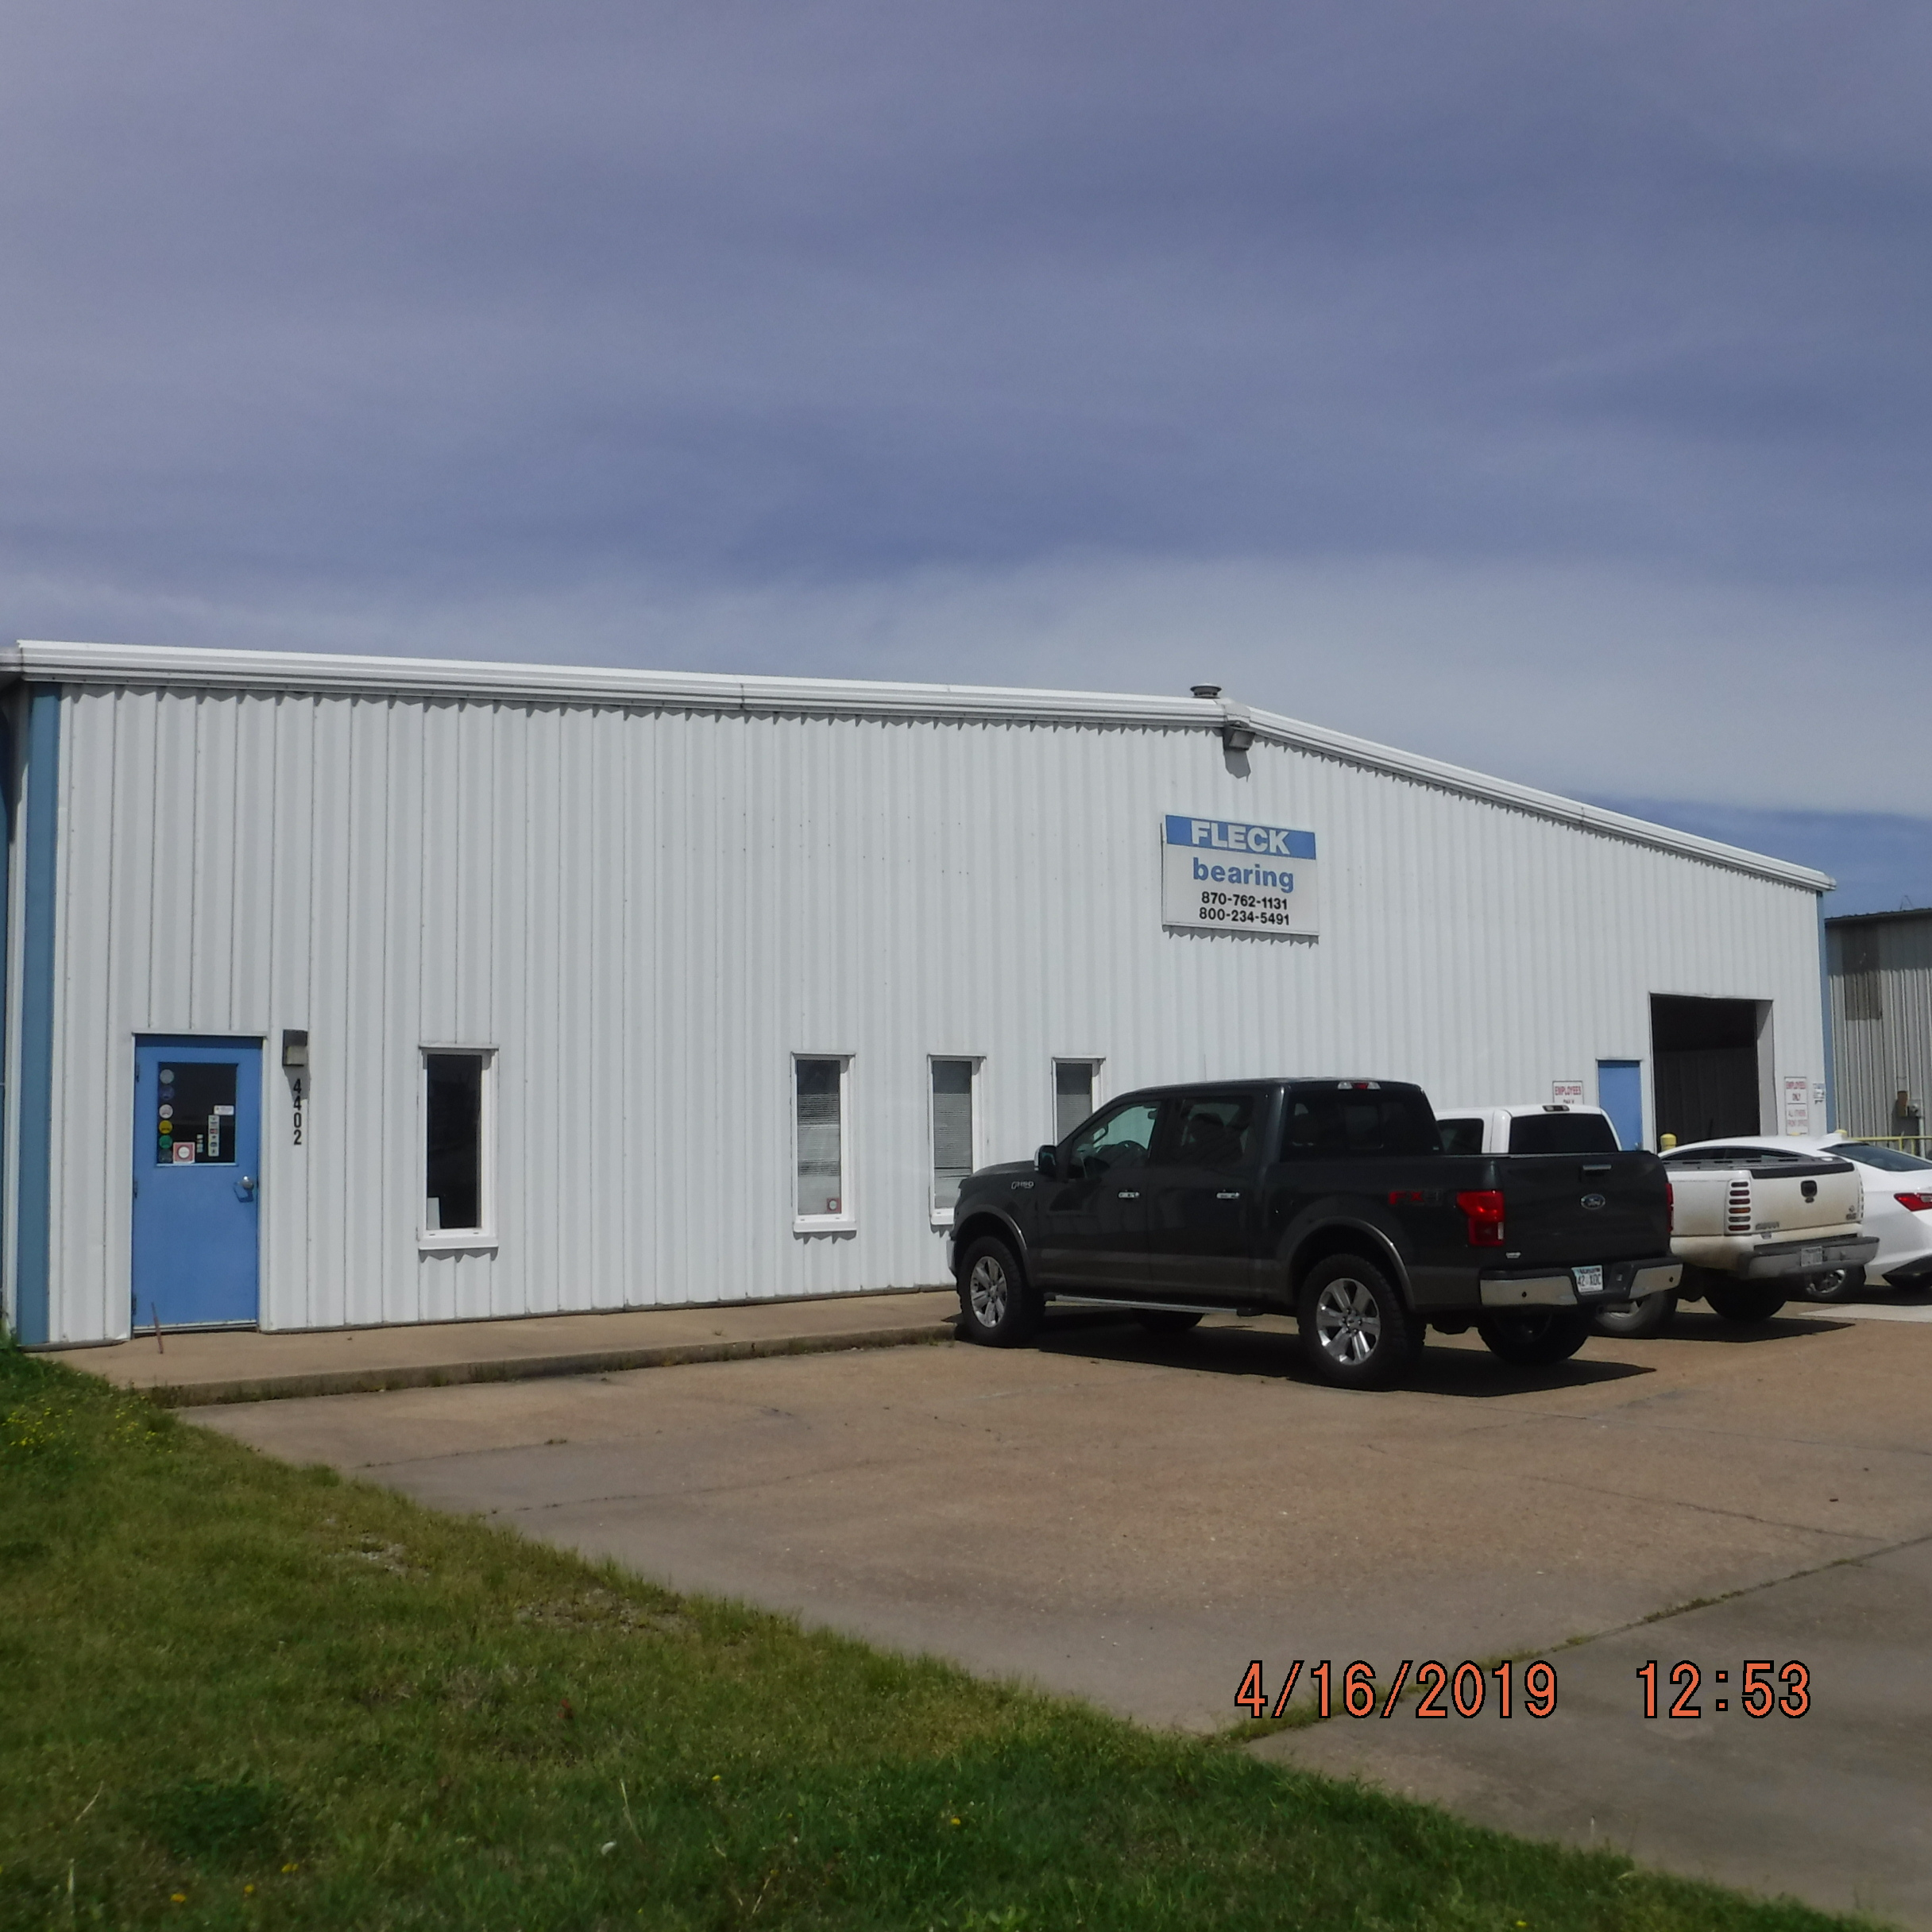 Blytheville, AR Commercial Real Estate - OfficeSpace com